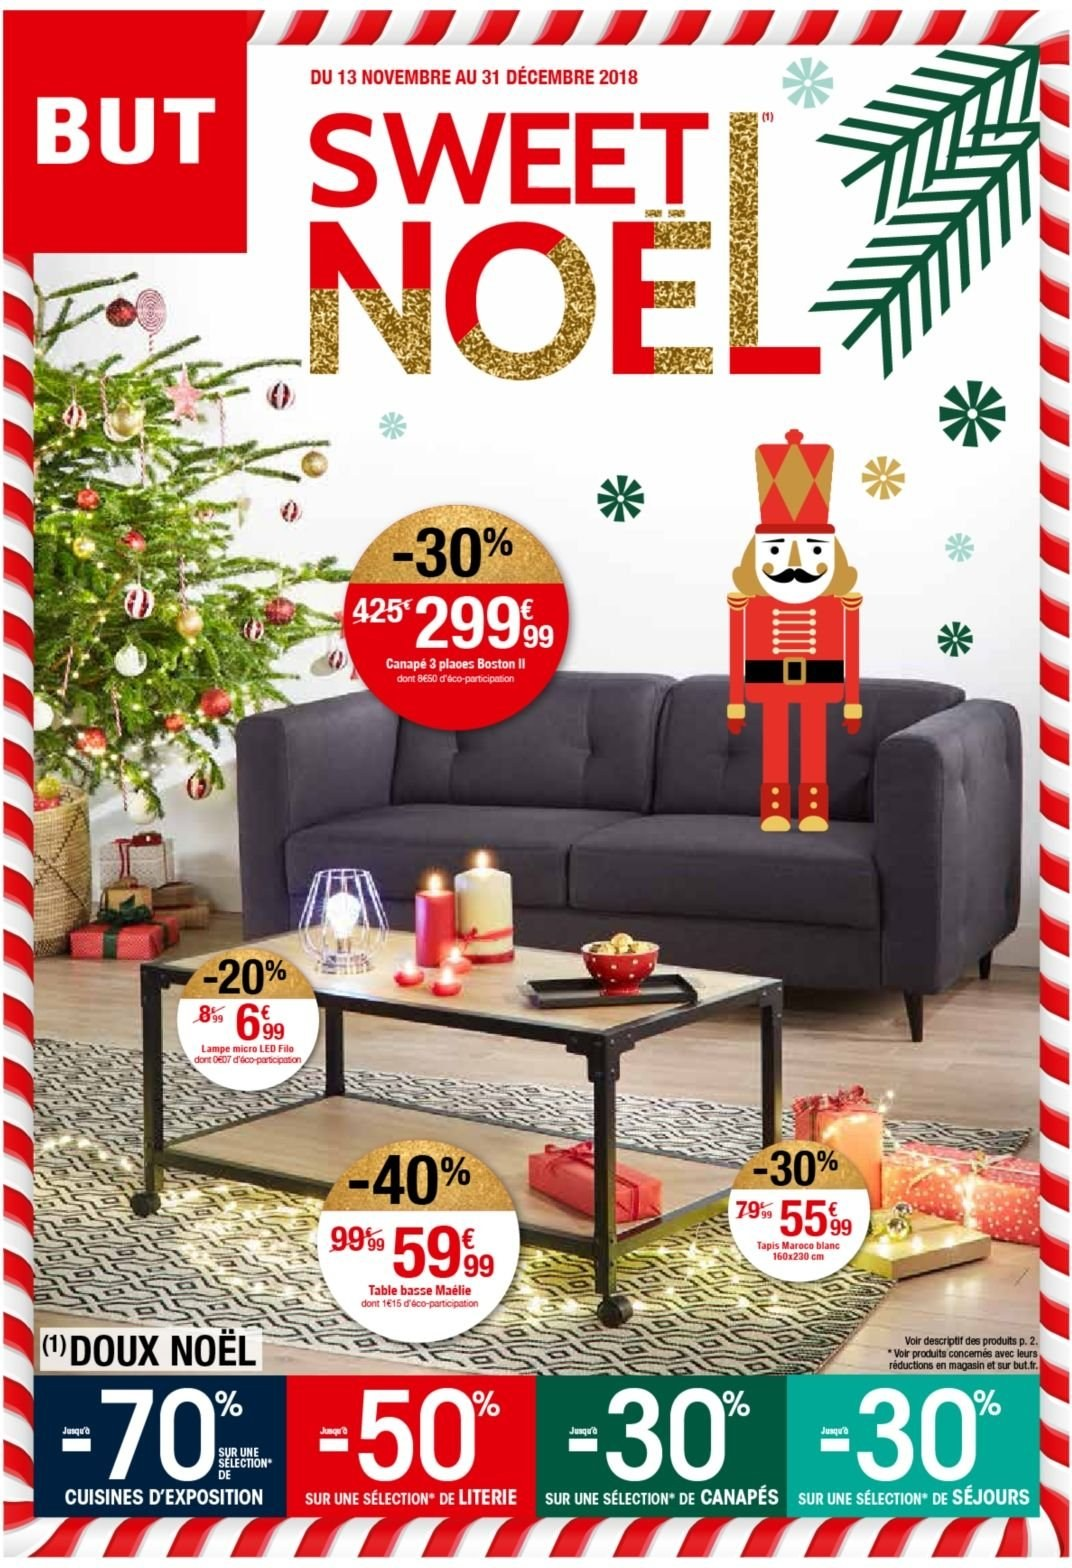 Catalogue But - 13.11.2018 - 31.12.2018 - Produits soldés - cuisine, tapis, canapé, table, table basse, lampe, micro-led, noël. Page 1.